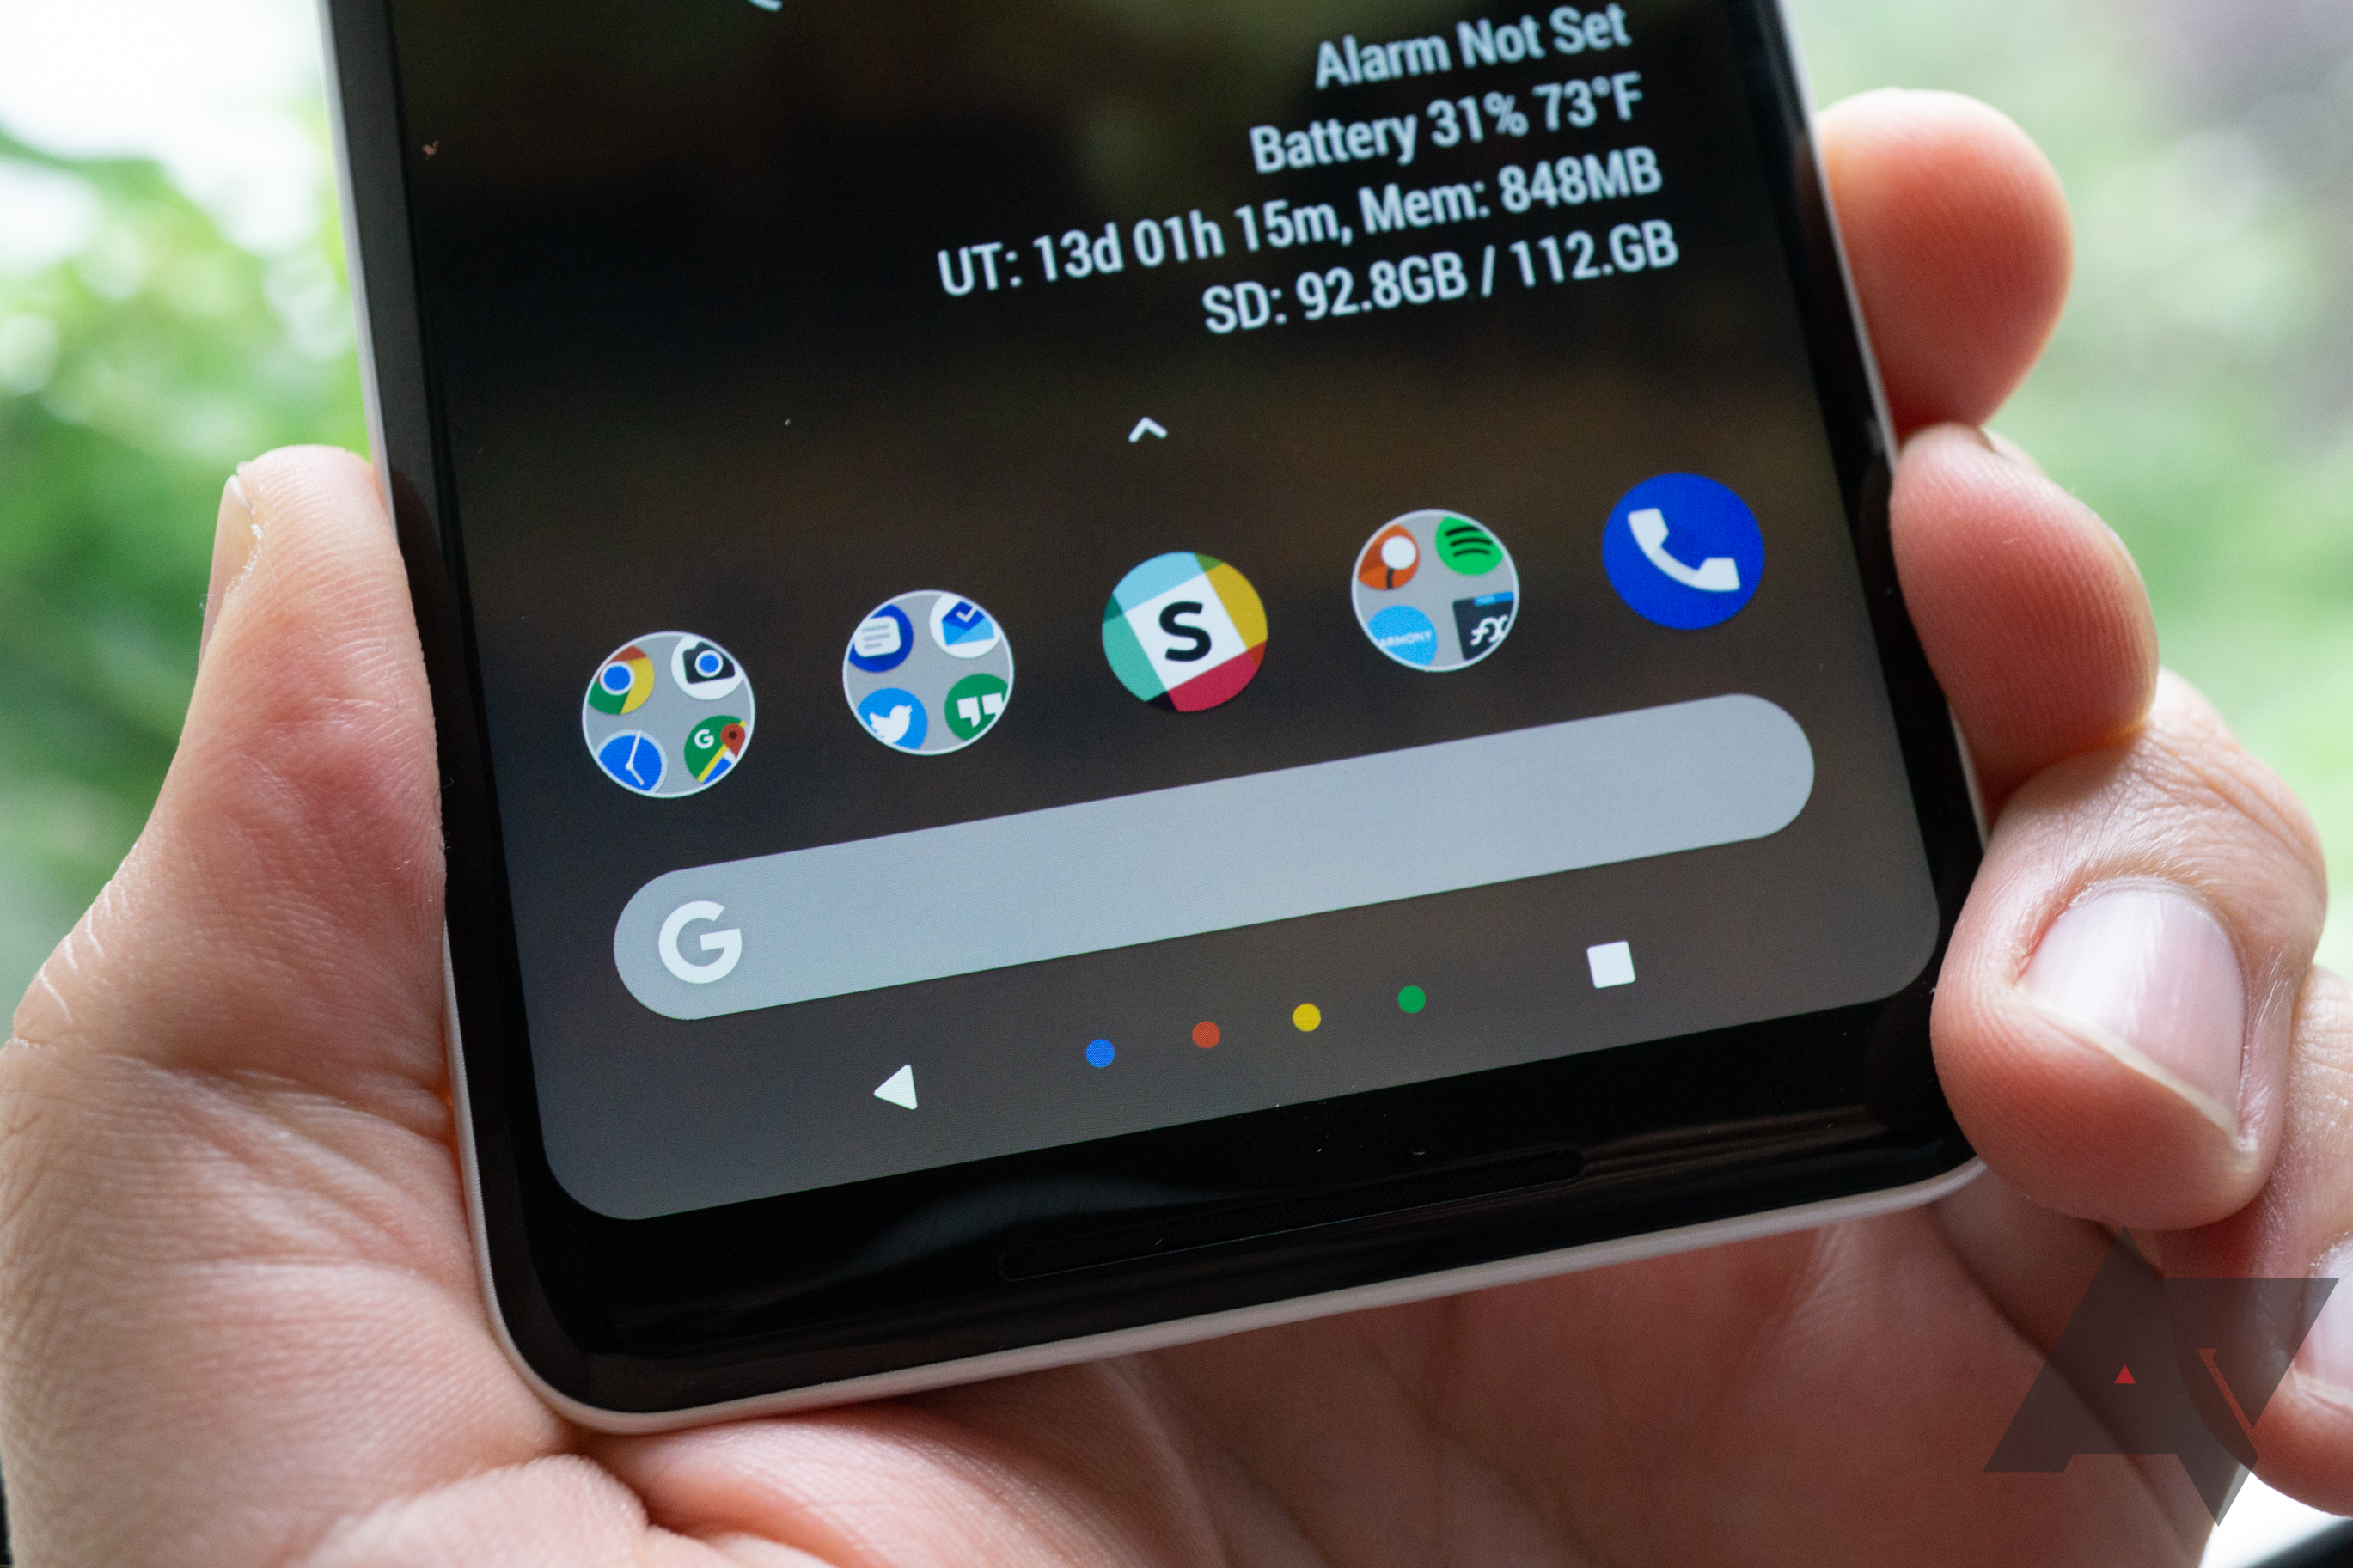 As Pixel 2 price drops, Google reveals big new upgrades